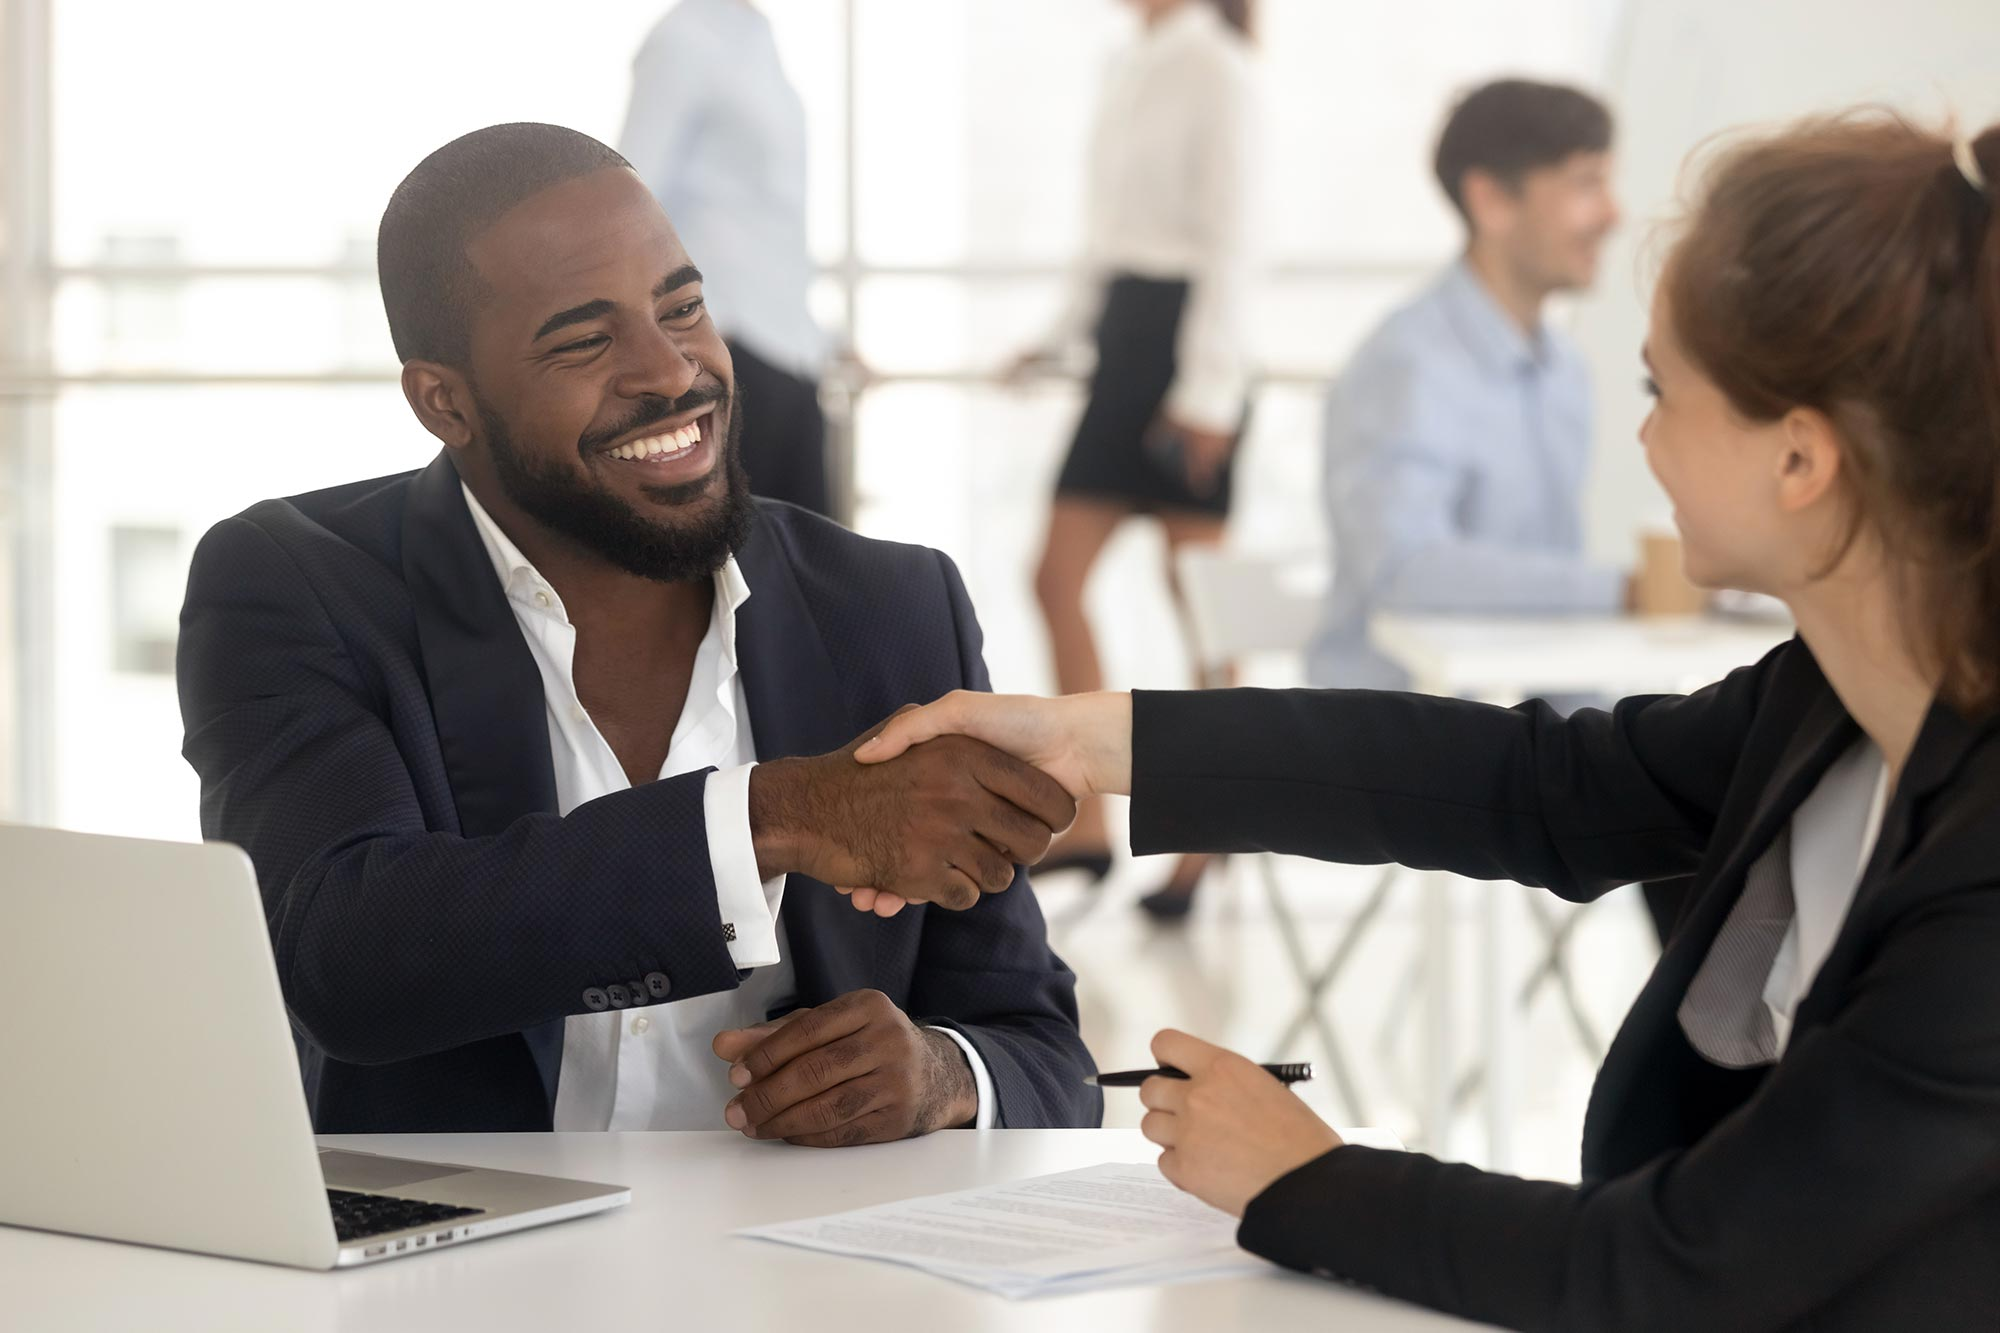 A man and woman shaking hands at a meeting in an office setting